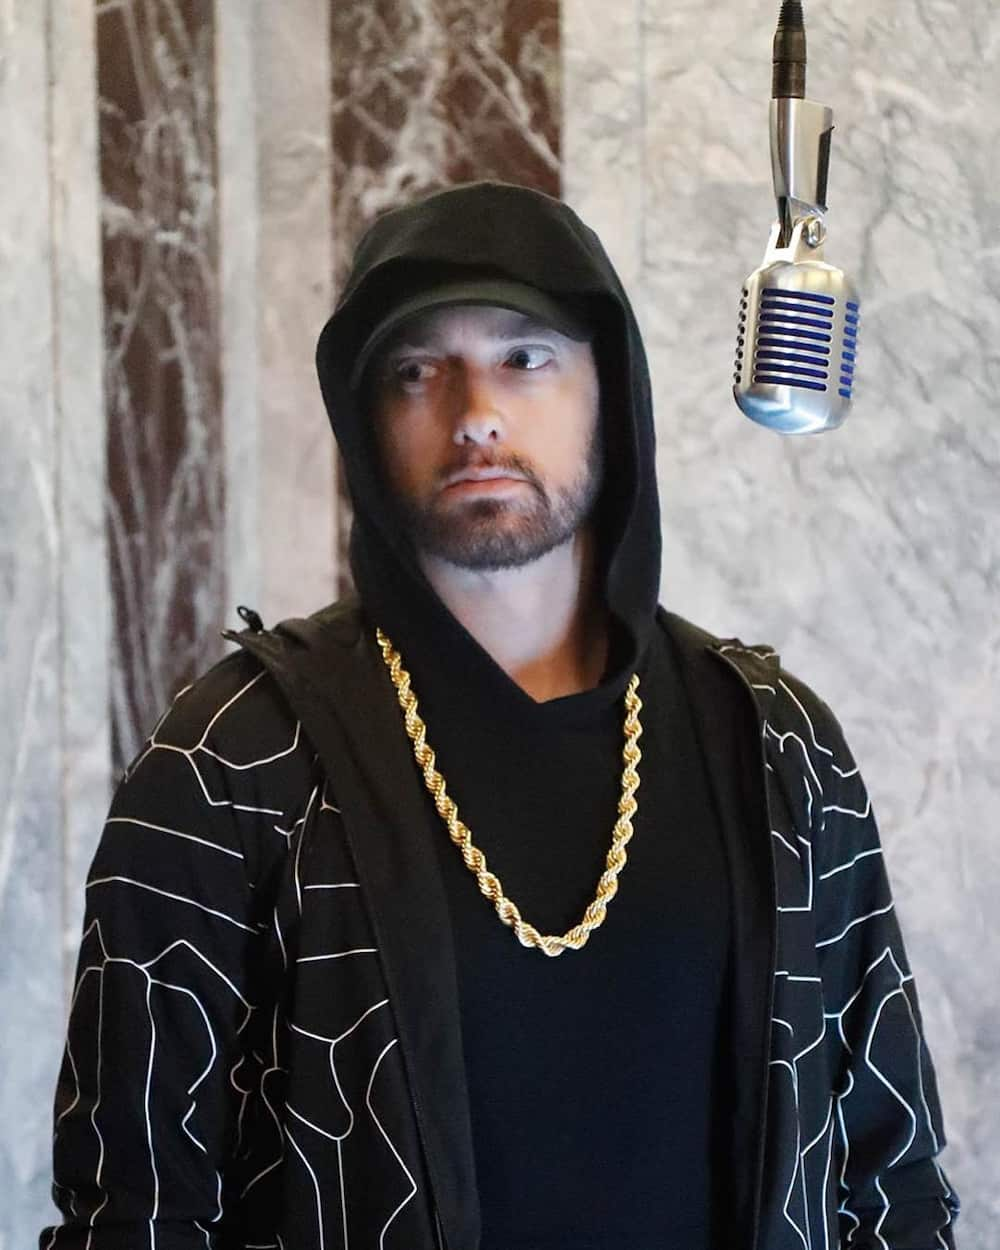 Is Eminem the fastest rapper?